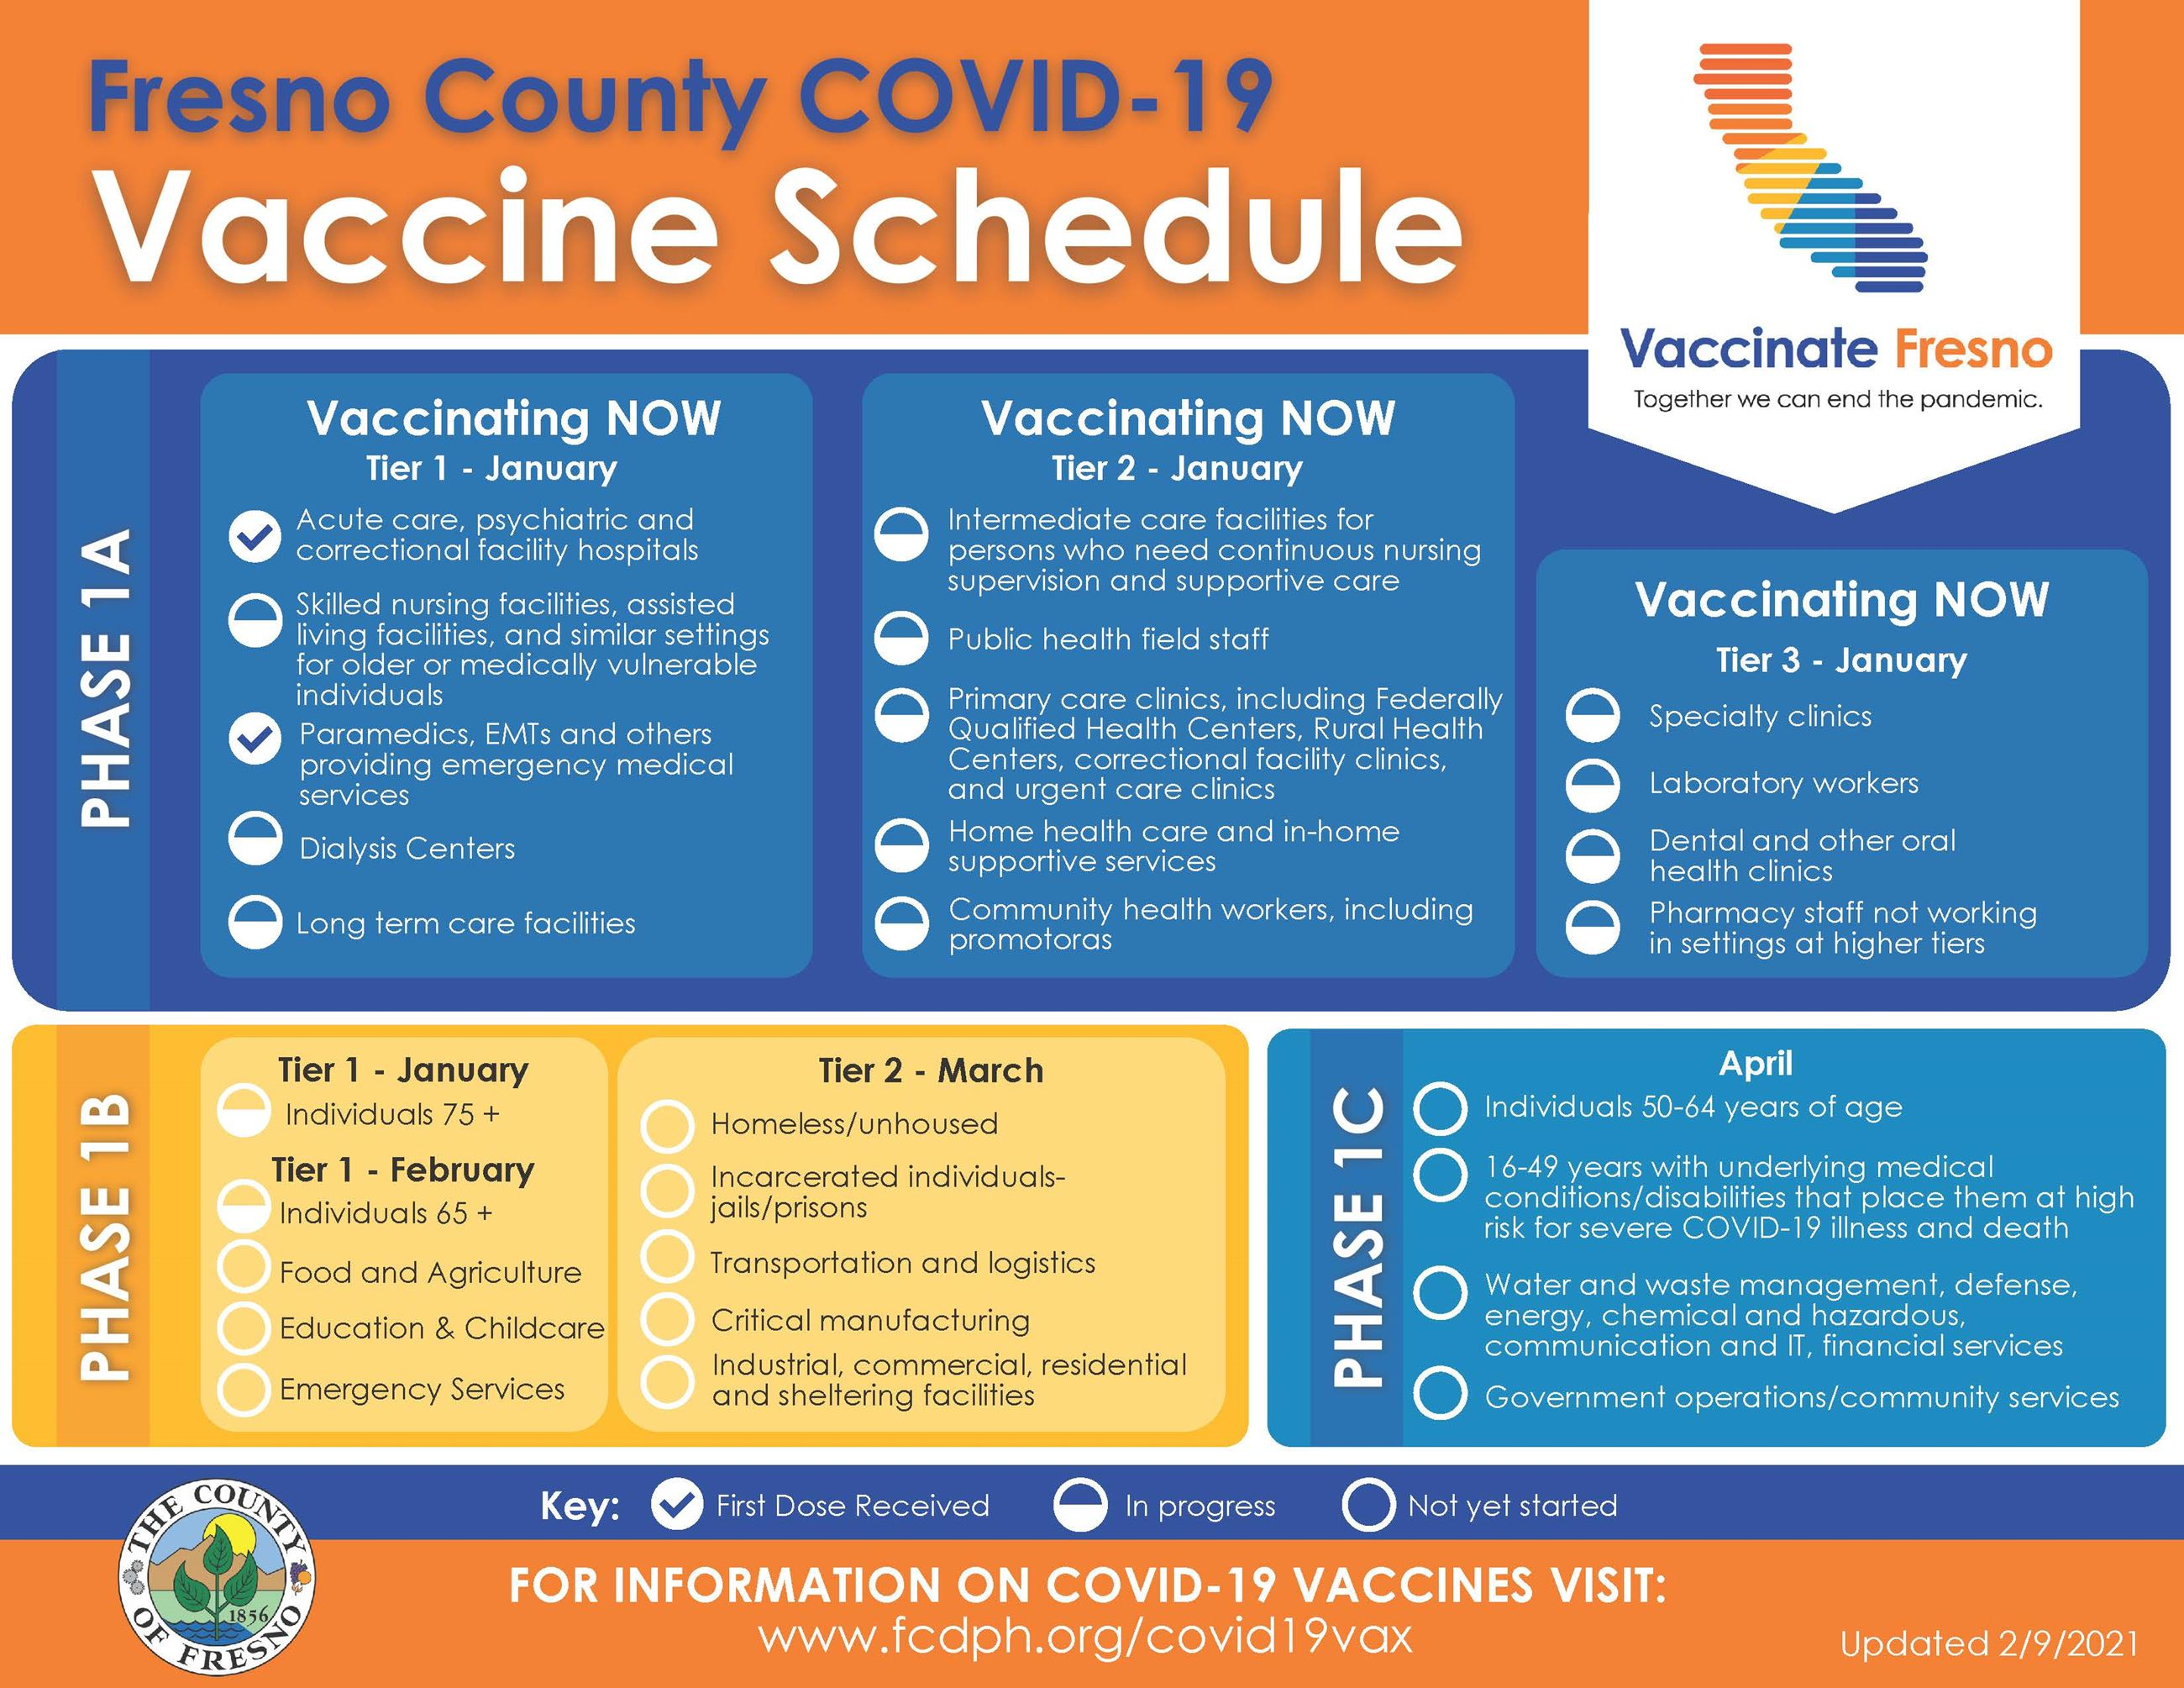 FCDPHCOVID19VaccineSchedule English 2-9-2021